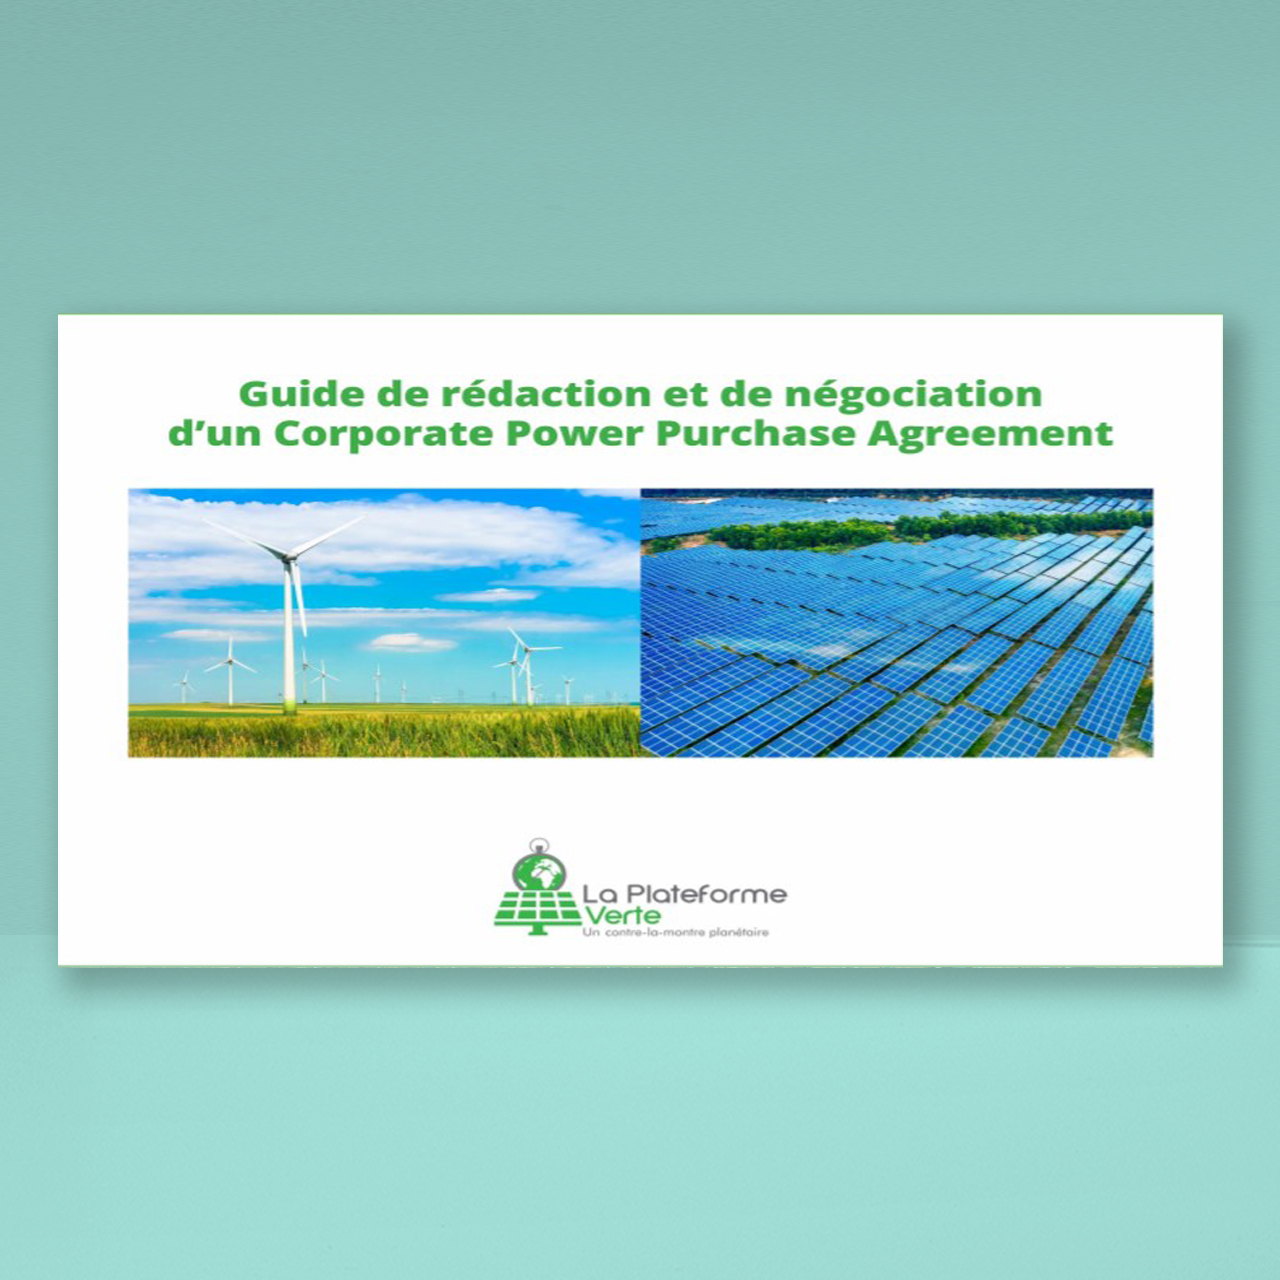 Guide to negotiation in Corporate Power Purchase Agreement